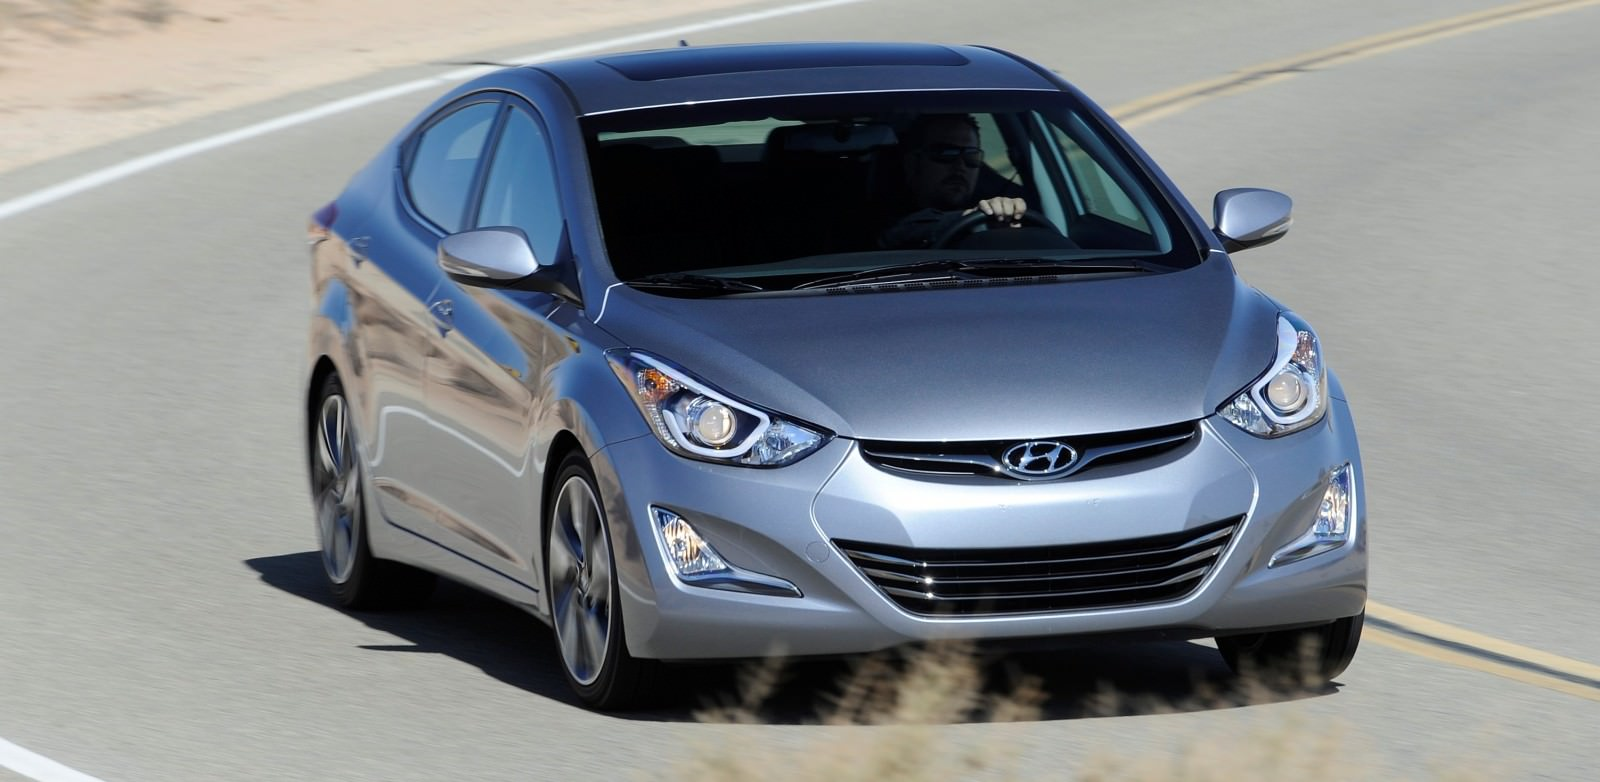 2015 Hyundai Elantra Sedan Brings Classy LED and Tech Updates  9